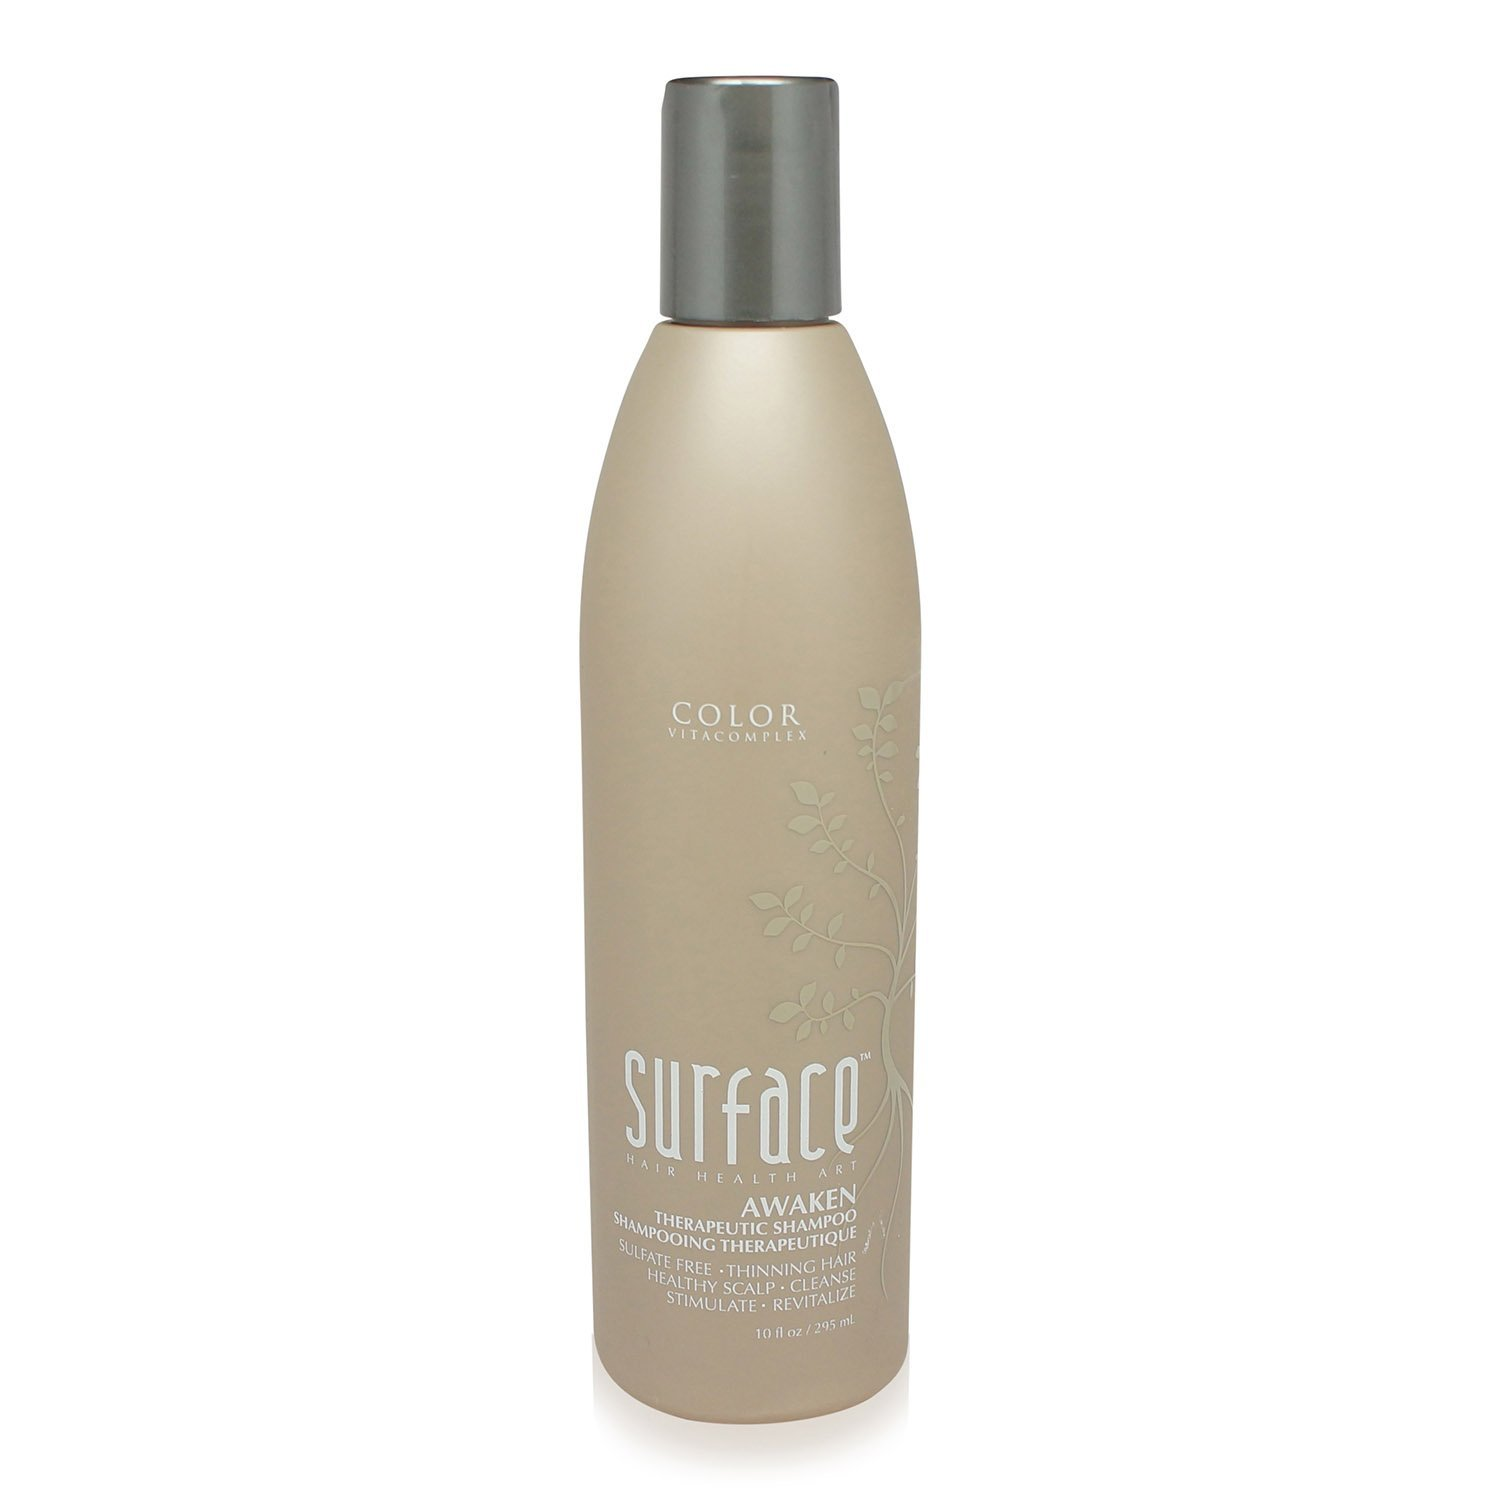 Surface Awaken Therapeutic Shampoo - 10 Oz by SURFACE